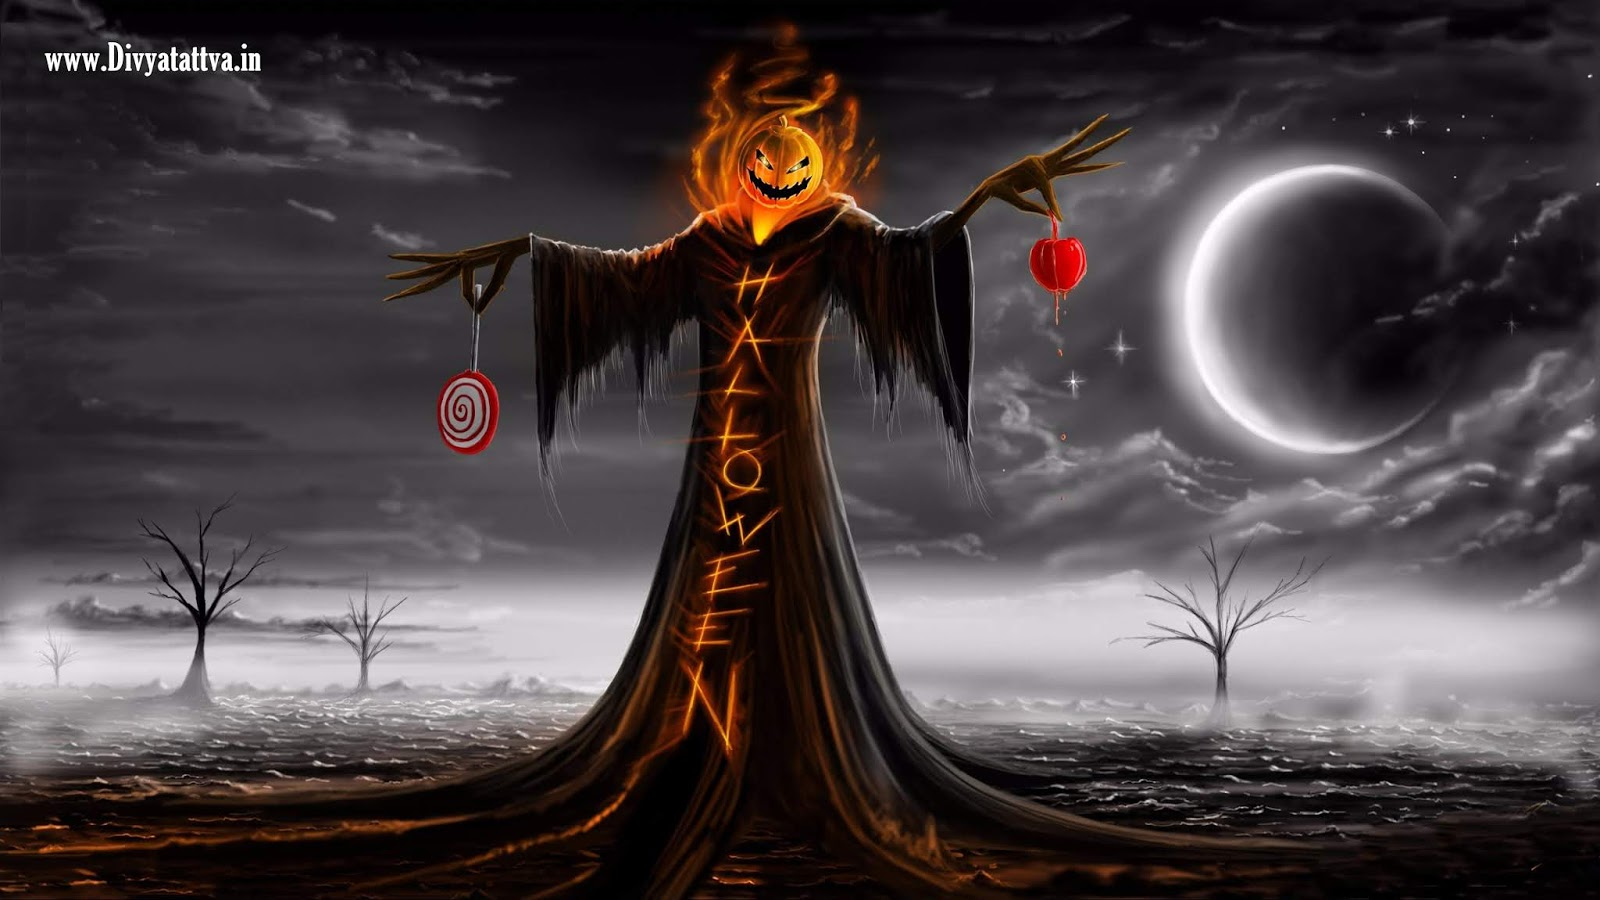 halloween hd widescreen wallpaper photos pictures creepy spooky images festival christian www.divyatattva.in